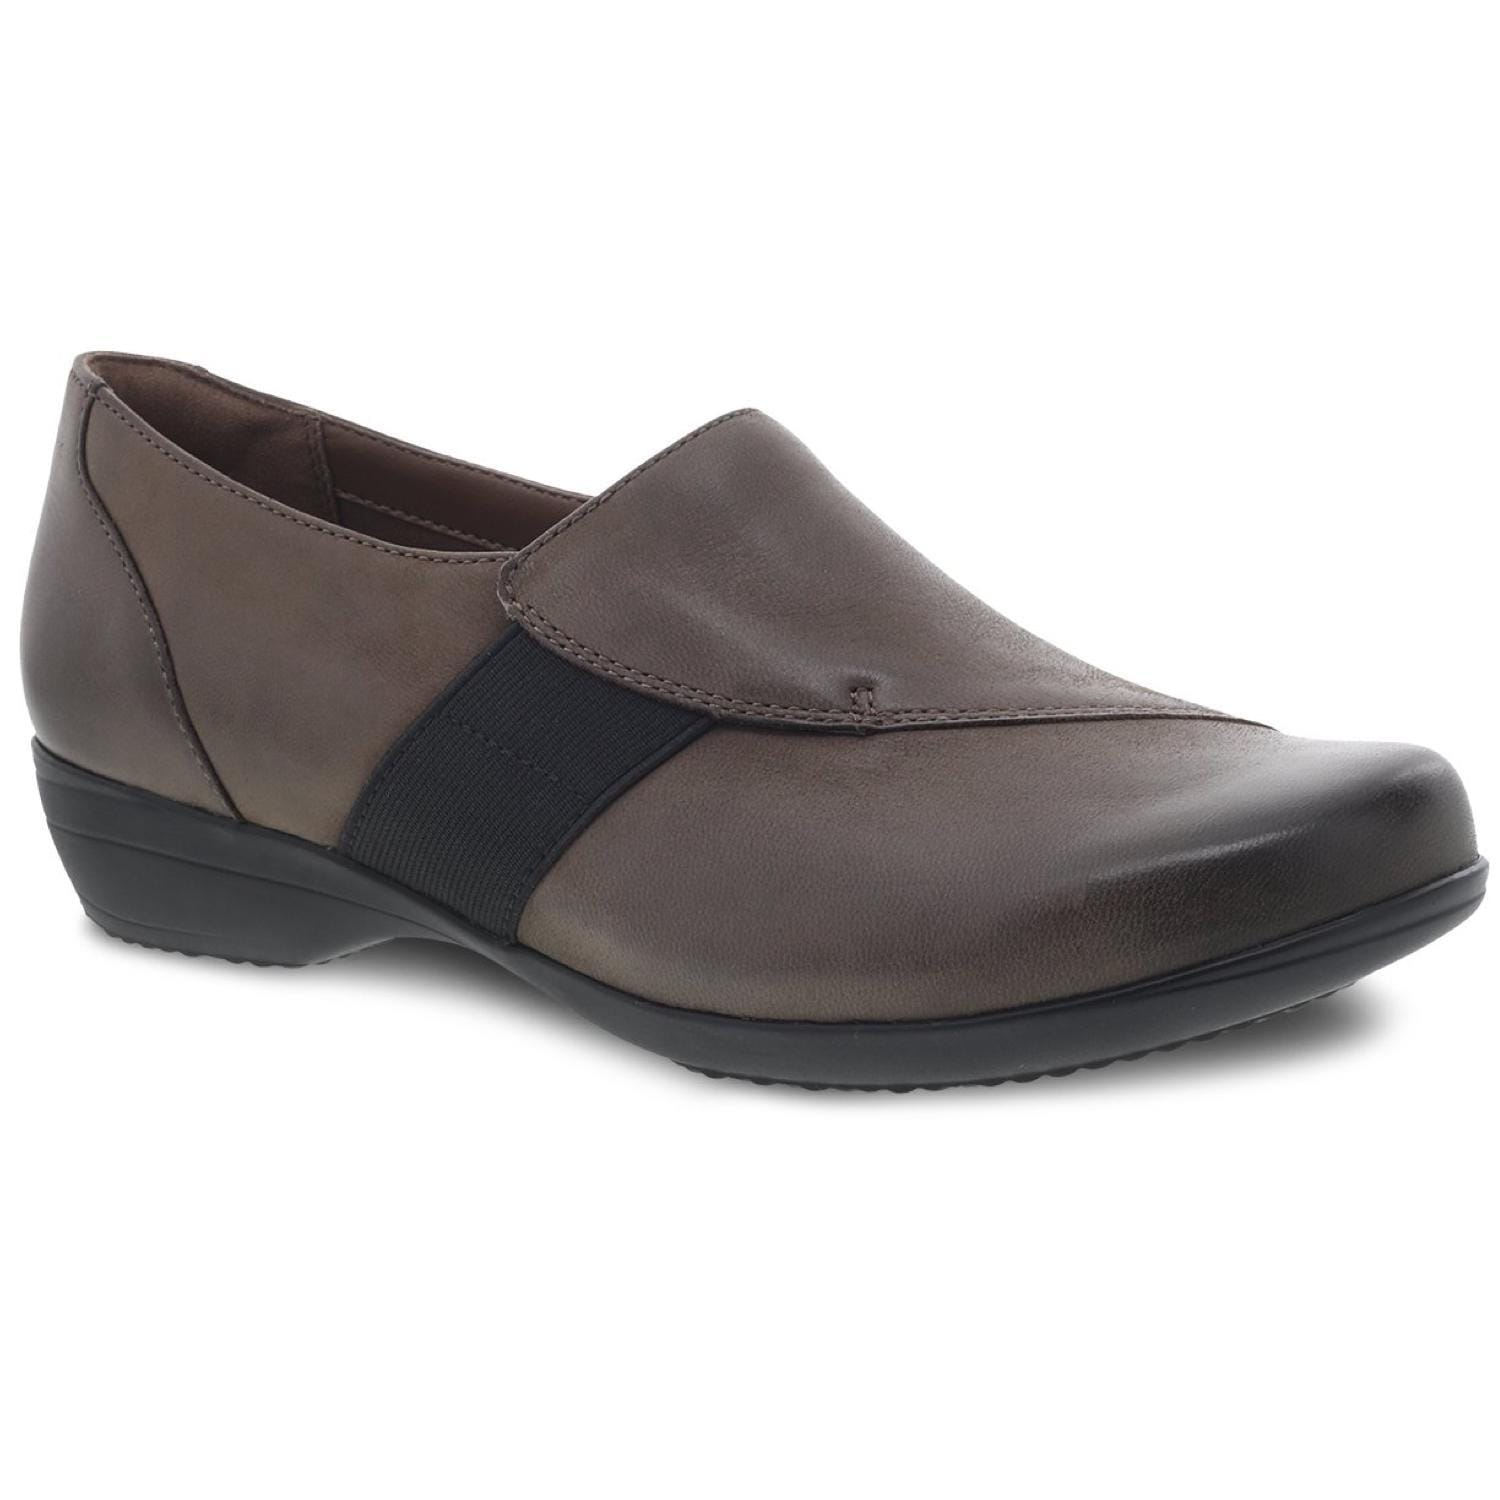 Dansko Women's Fae | Supportive Slip On Leather Loafer | Simons Shoes